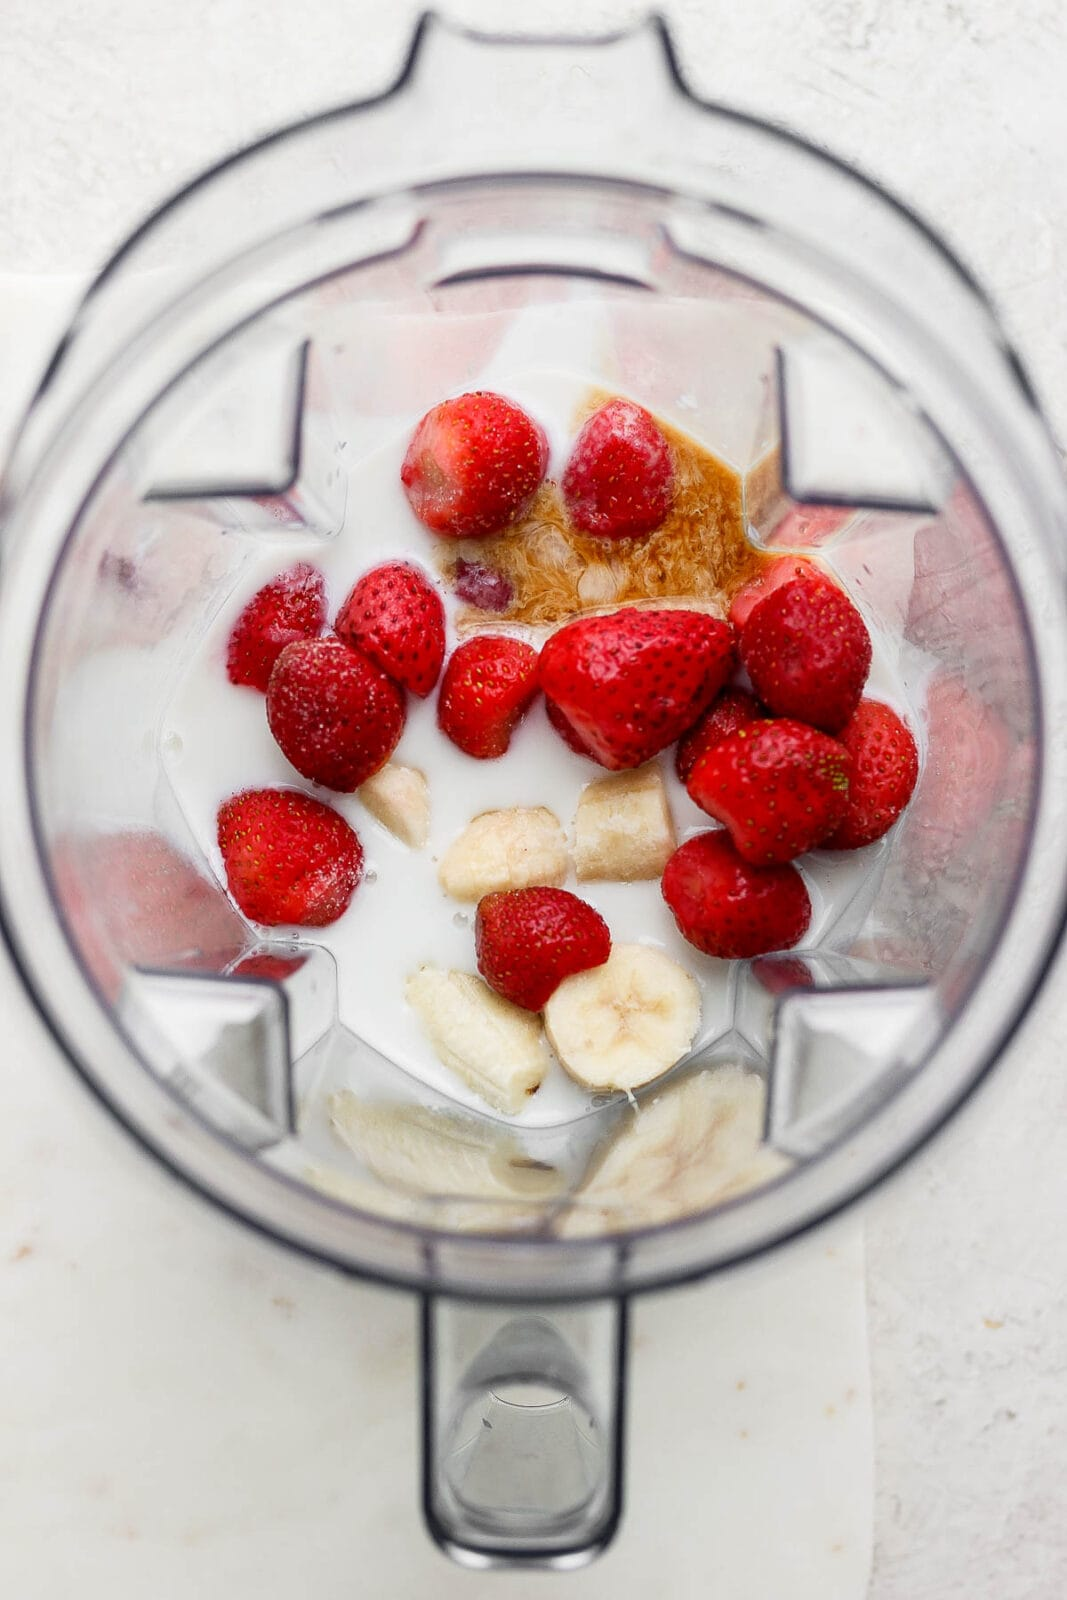 Strawberry banana smoothie ingredients in a blender.